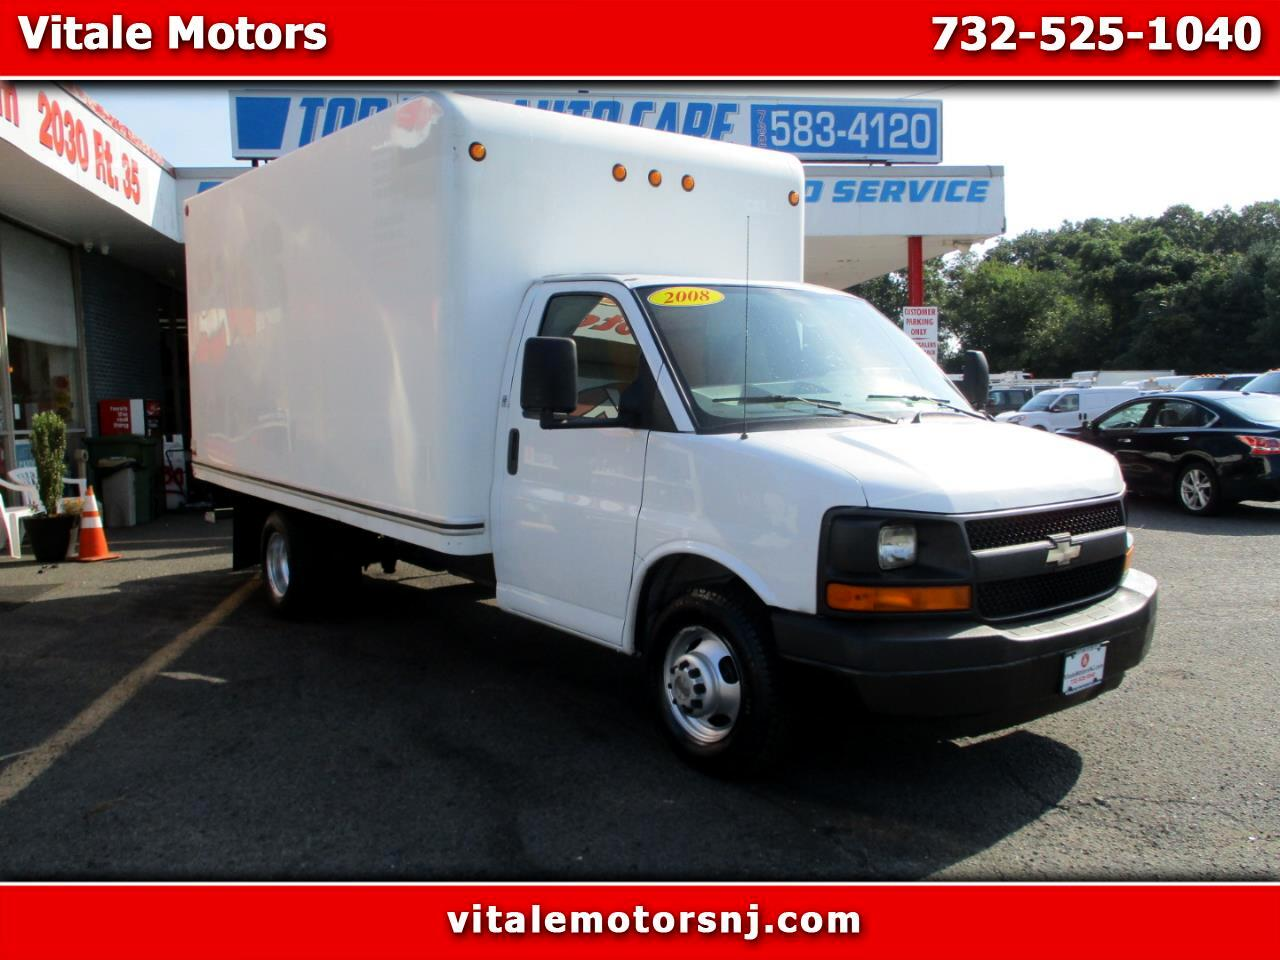 2008 Chevrolet Express G3500 14 FOOT BOX TRUCK 58K MILES